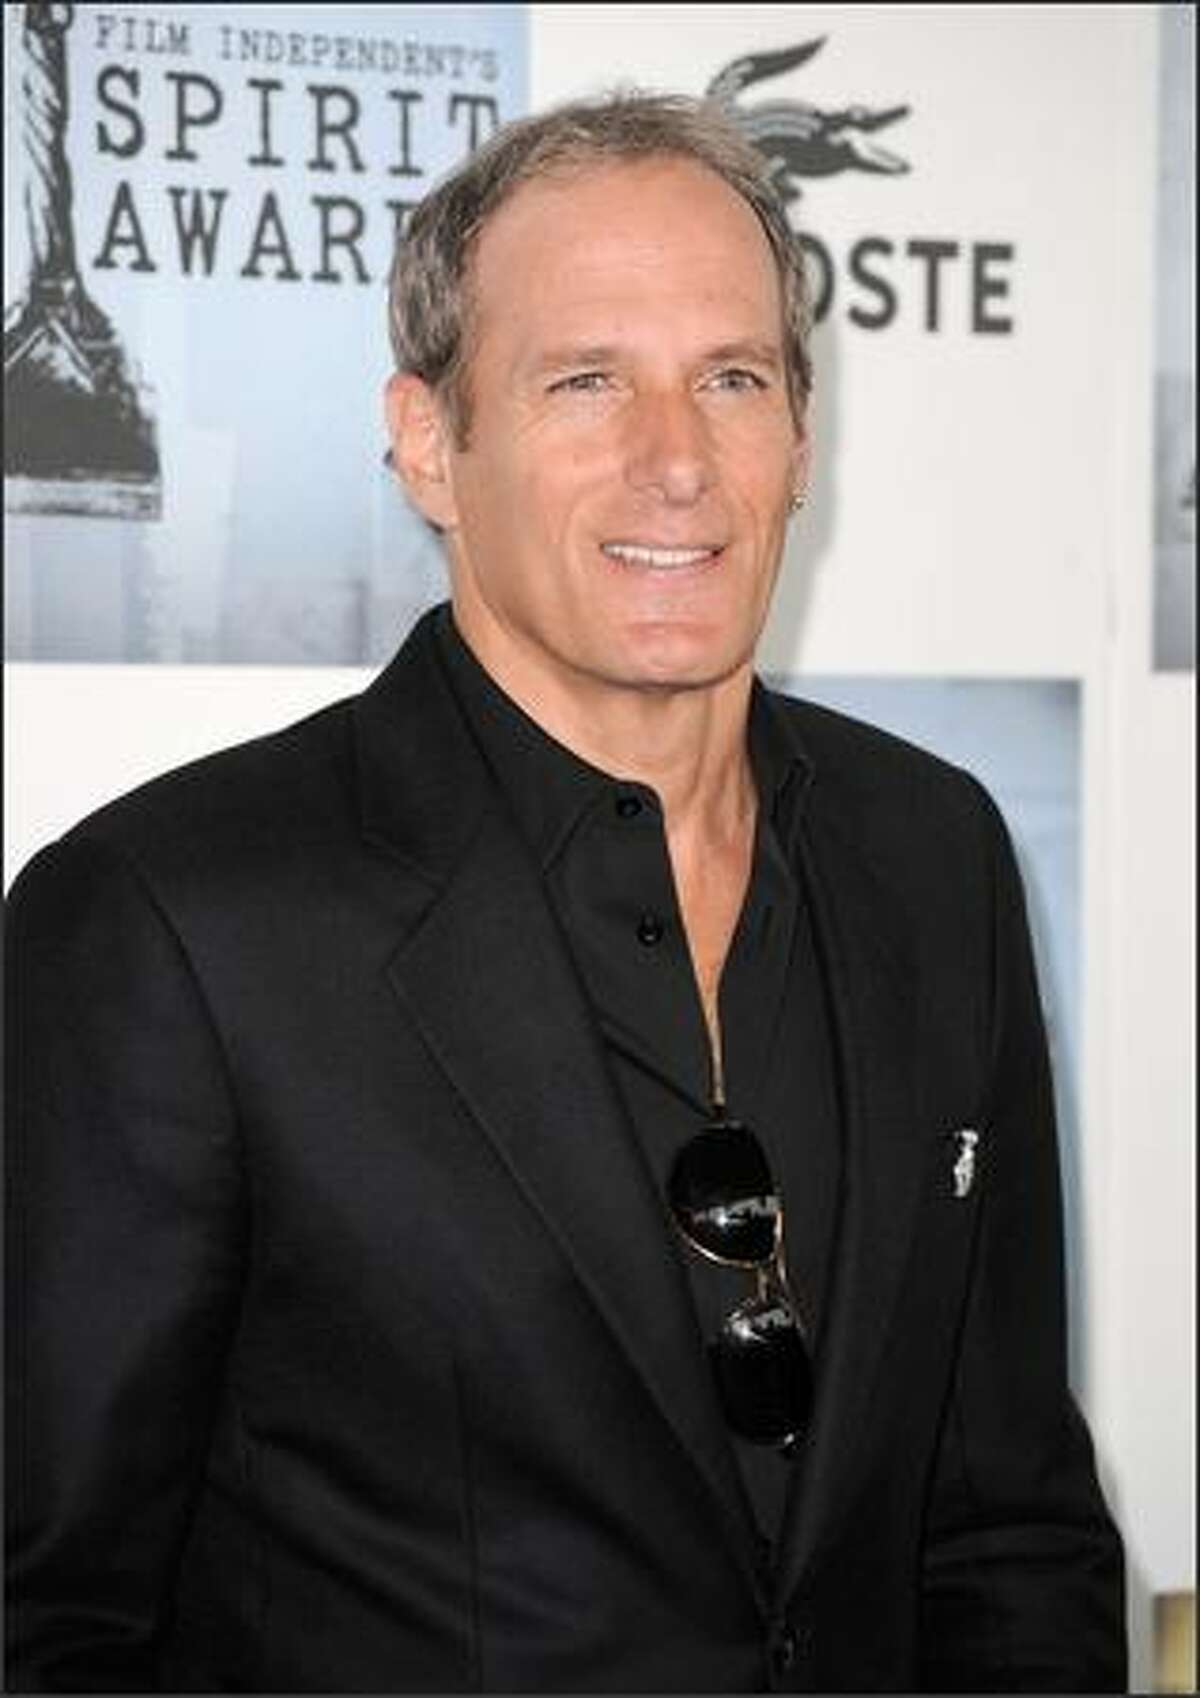 Musician Michael Bolton arrives at the 24th annual Independent Spirit Awards held at Santa Monica Beach in Santa Monica, Calif., on Saturday, Feb. 21, 2009. The awards celebrate the best idependent film offerings of the past year.